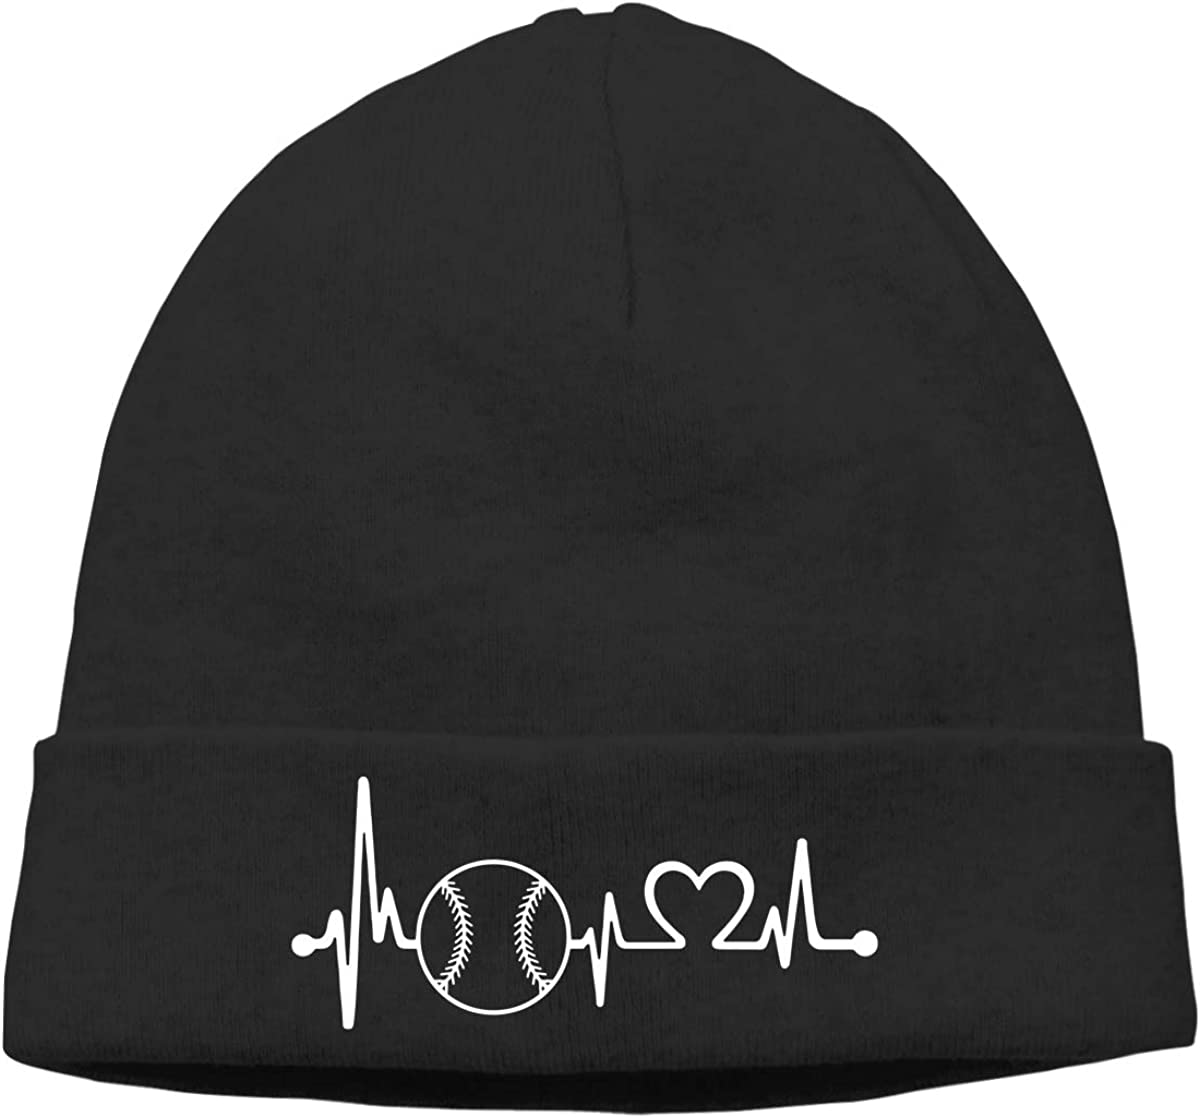 Thin Baseball Softball Heartbeat Lifeline Unisex Solid Color Beanie Hat Stretchy /& Soft Winter Cap